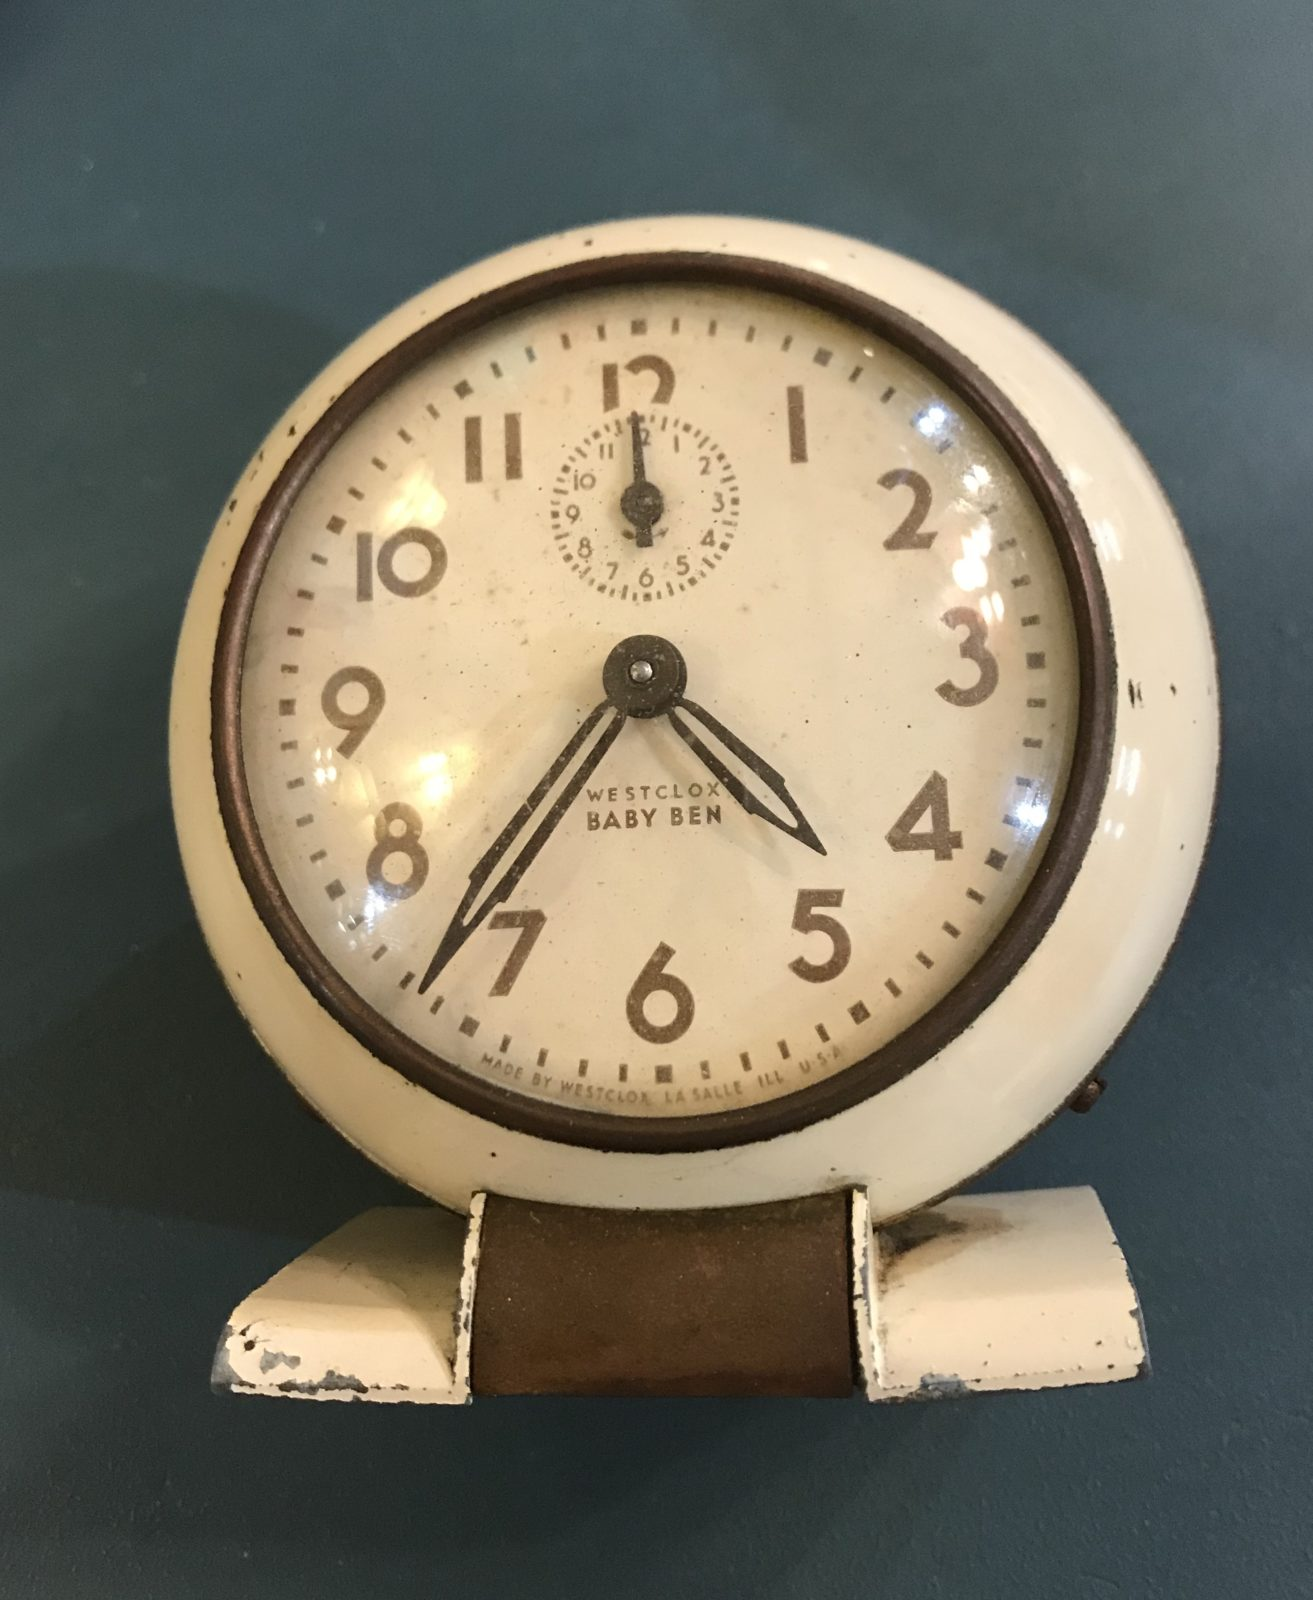 Westclox Baby Ben Alarm Clock • This vintage alarm clock is in great used condition and really works! The neutral paint works in any decor, and would look wonderful in a guest room, office as part of your collection!